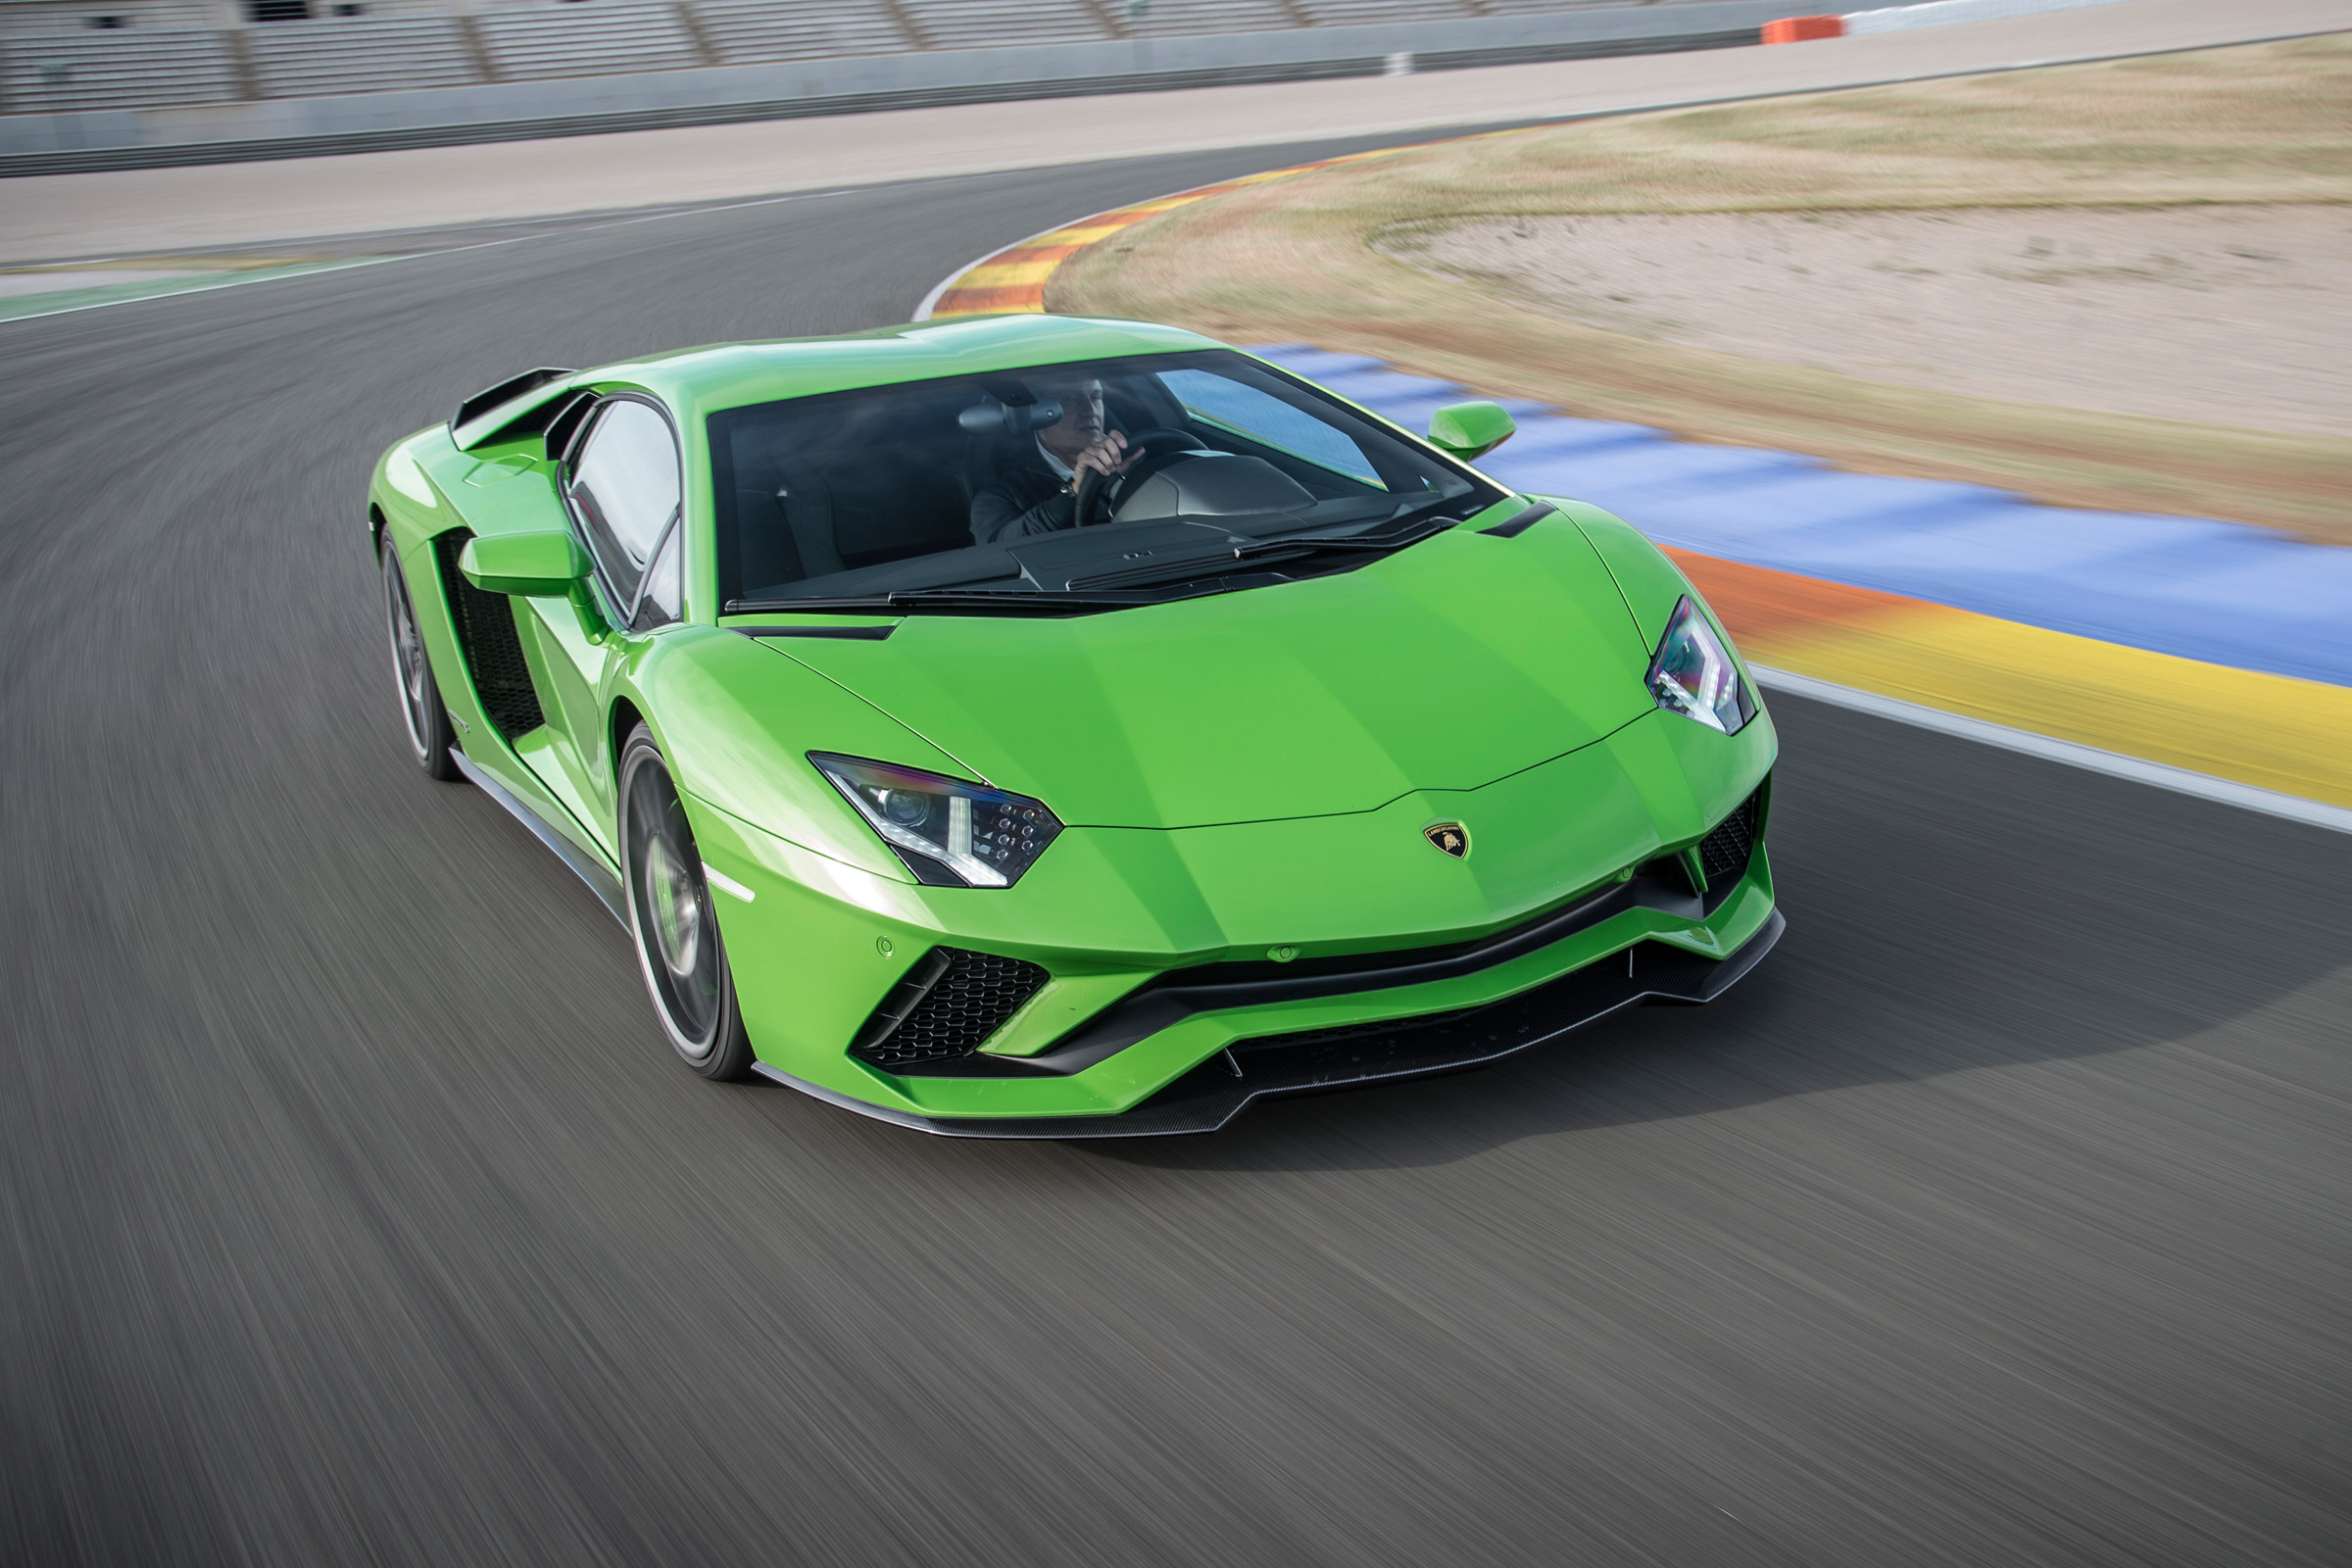 2017 Lamborghini Aventador S Green Front View (Photo 10 of 20)